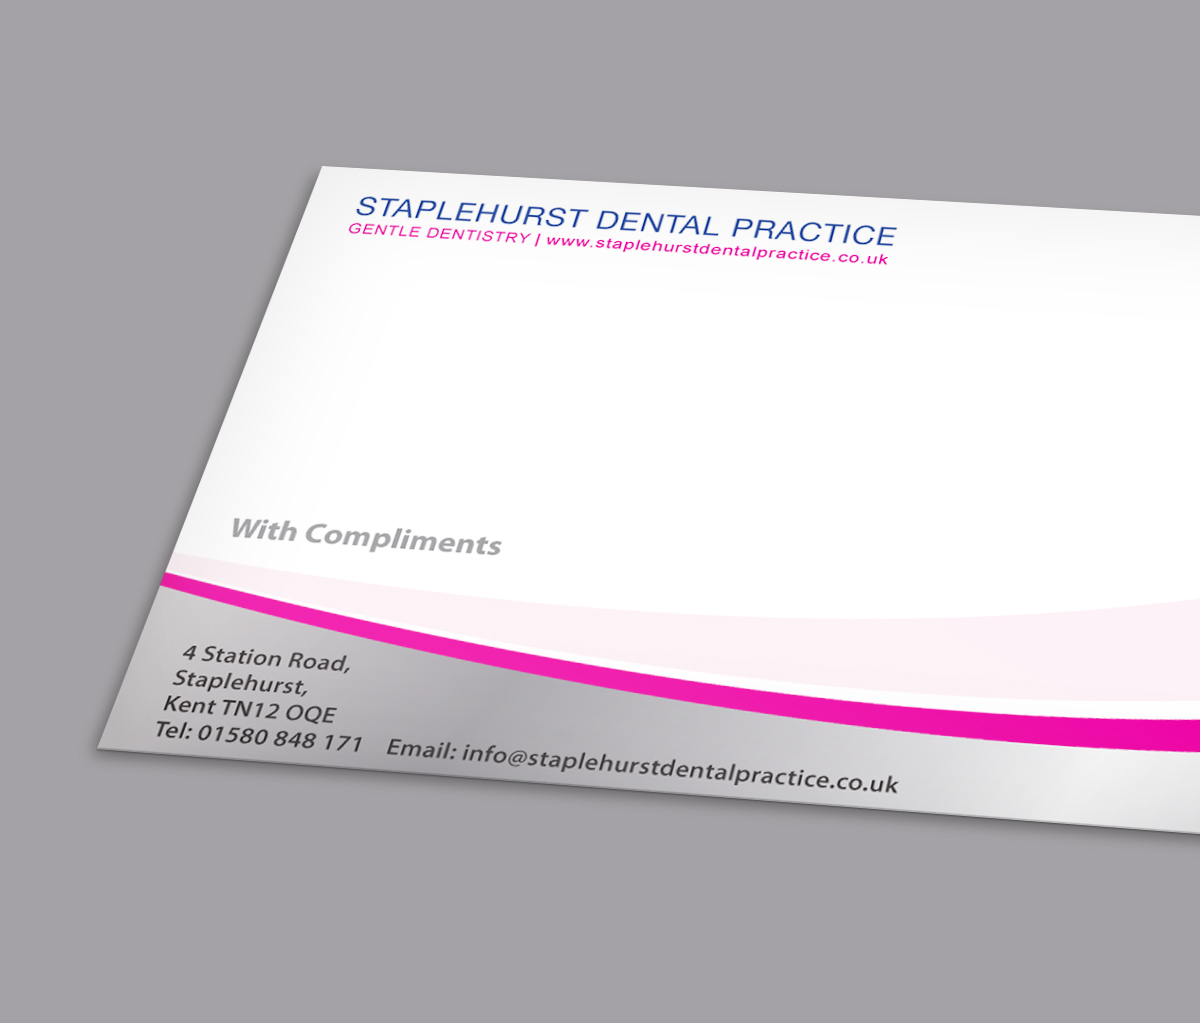 Staplehurst Dental Practice compliments slip design by CS Creative Studio